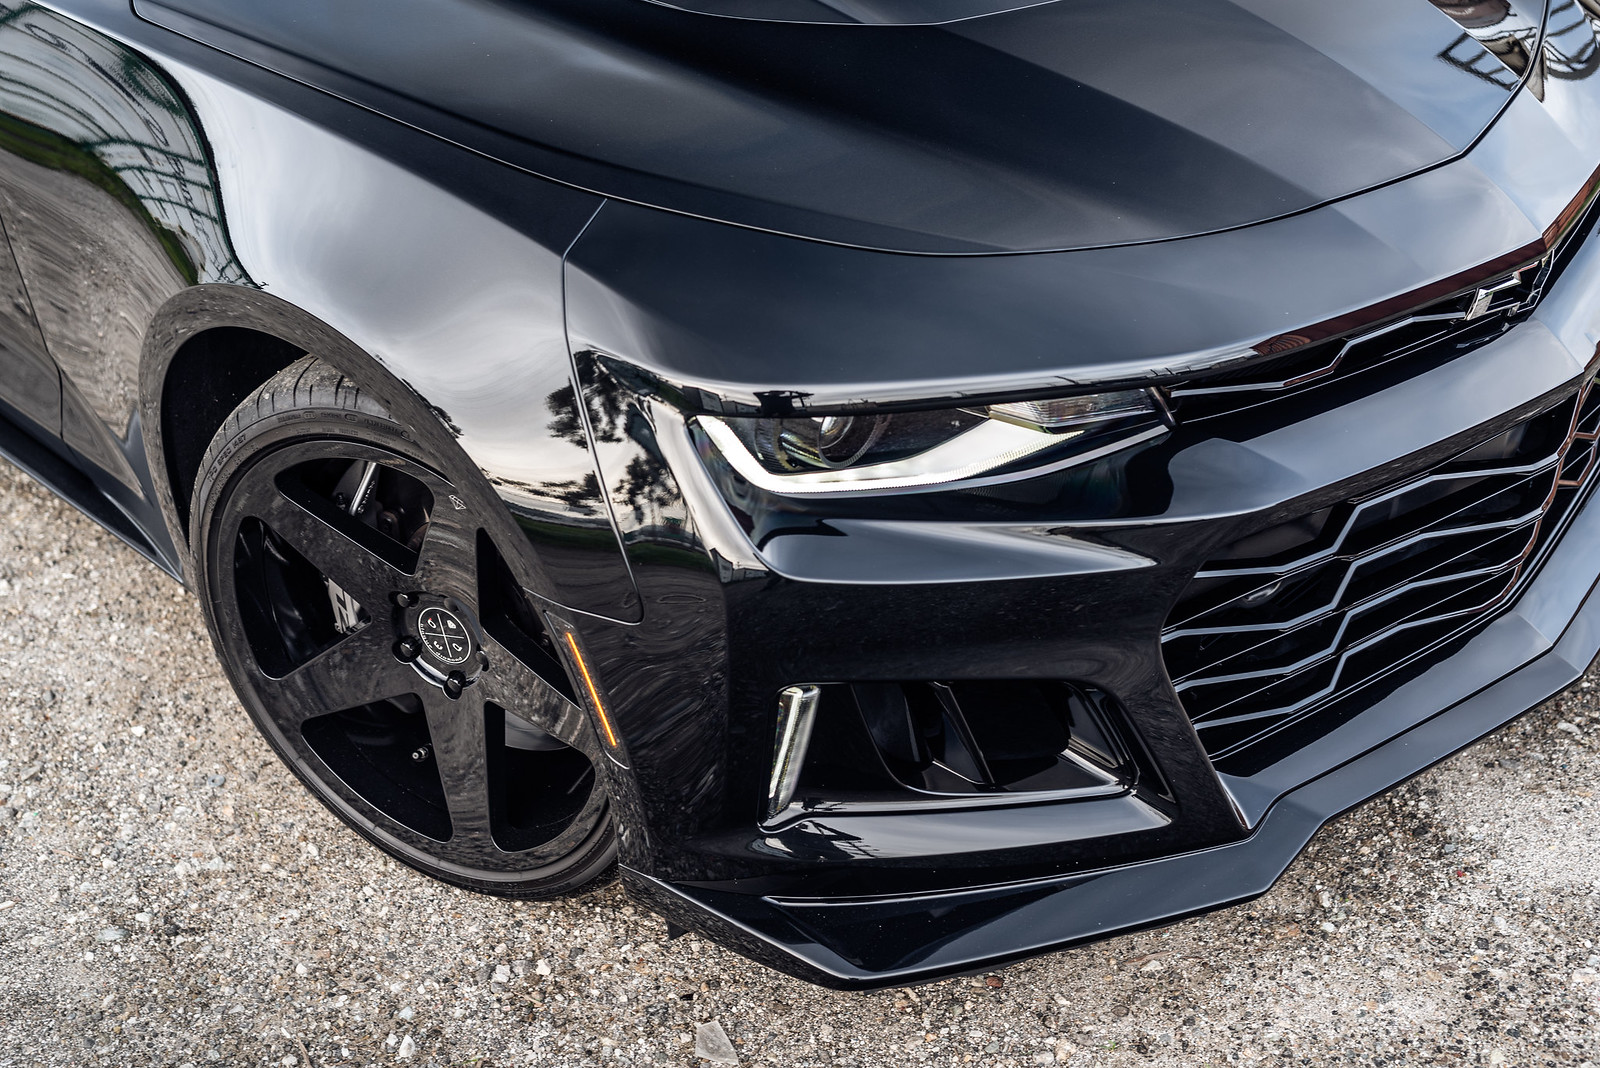 2017_Chevy_Camaro_ZL1_with_Gloss_Black_BD15 (8)